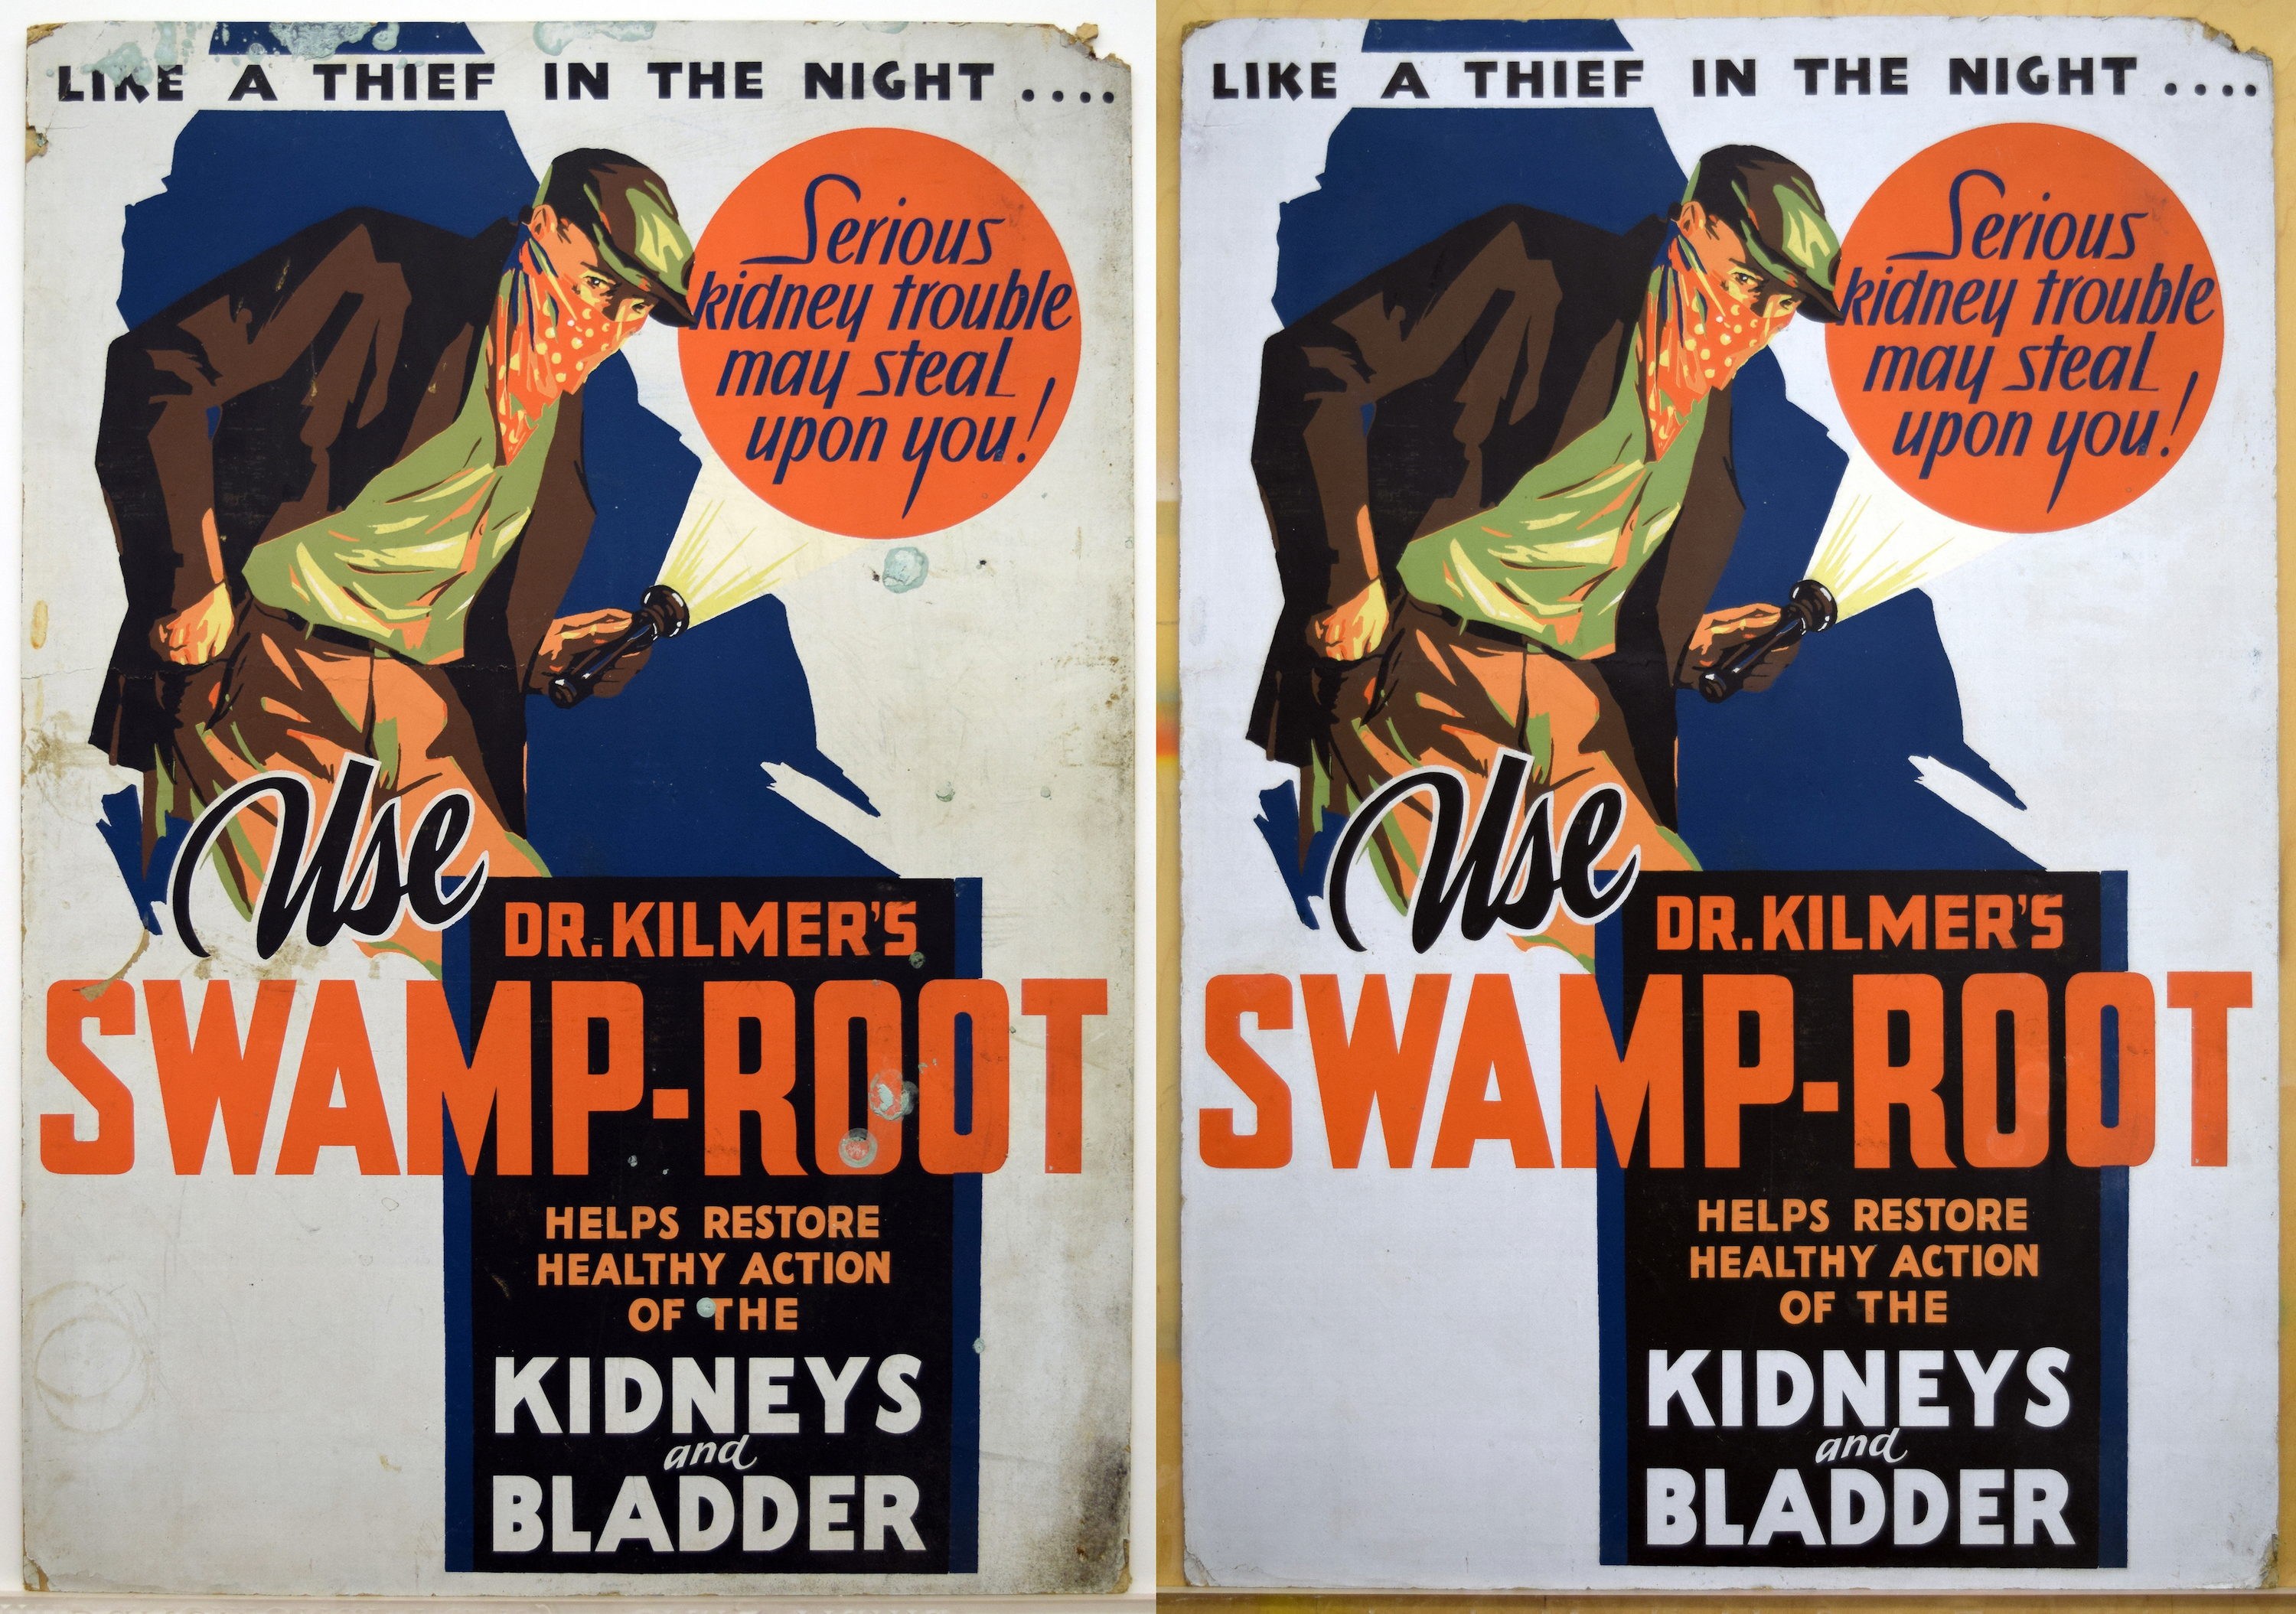 Dr. Kilmer's Swamp-Root